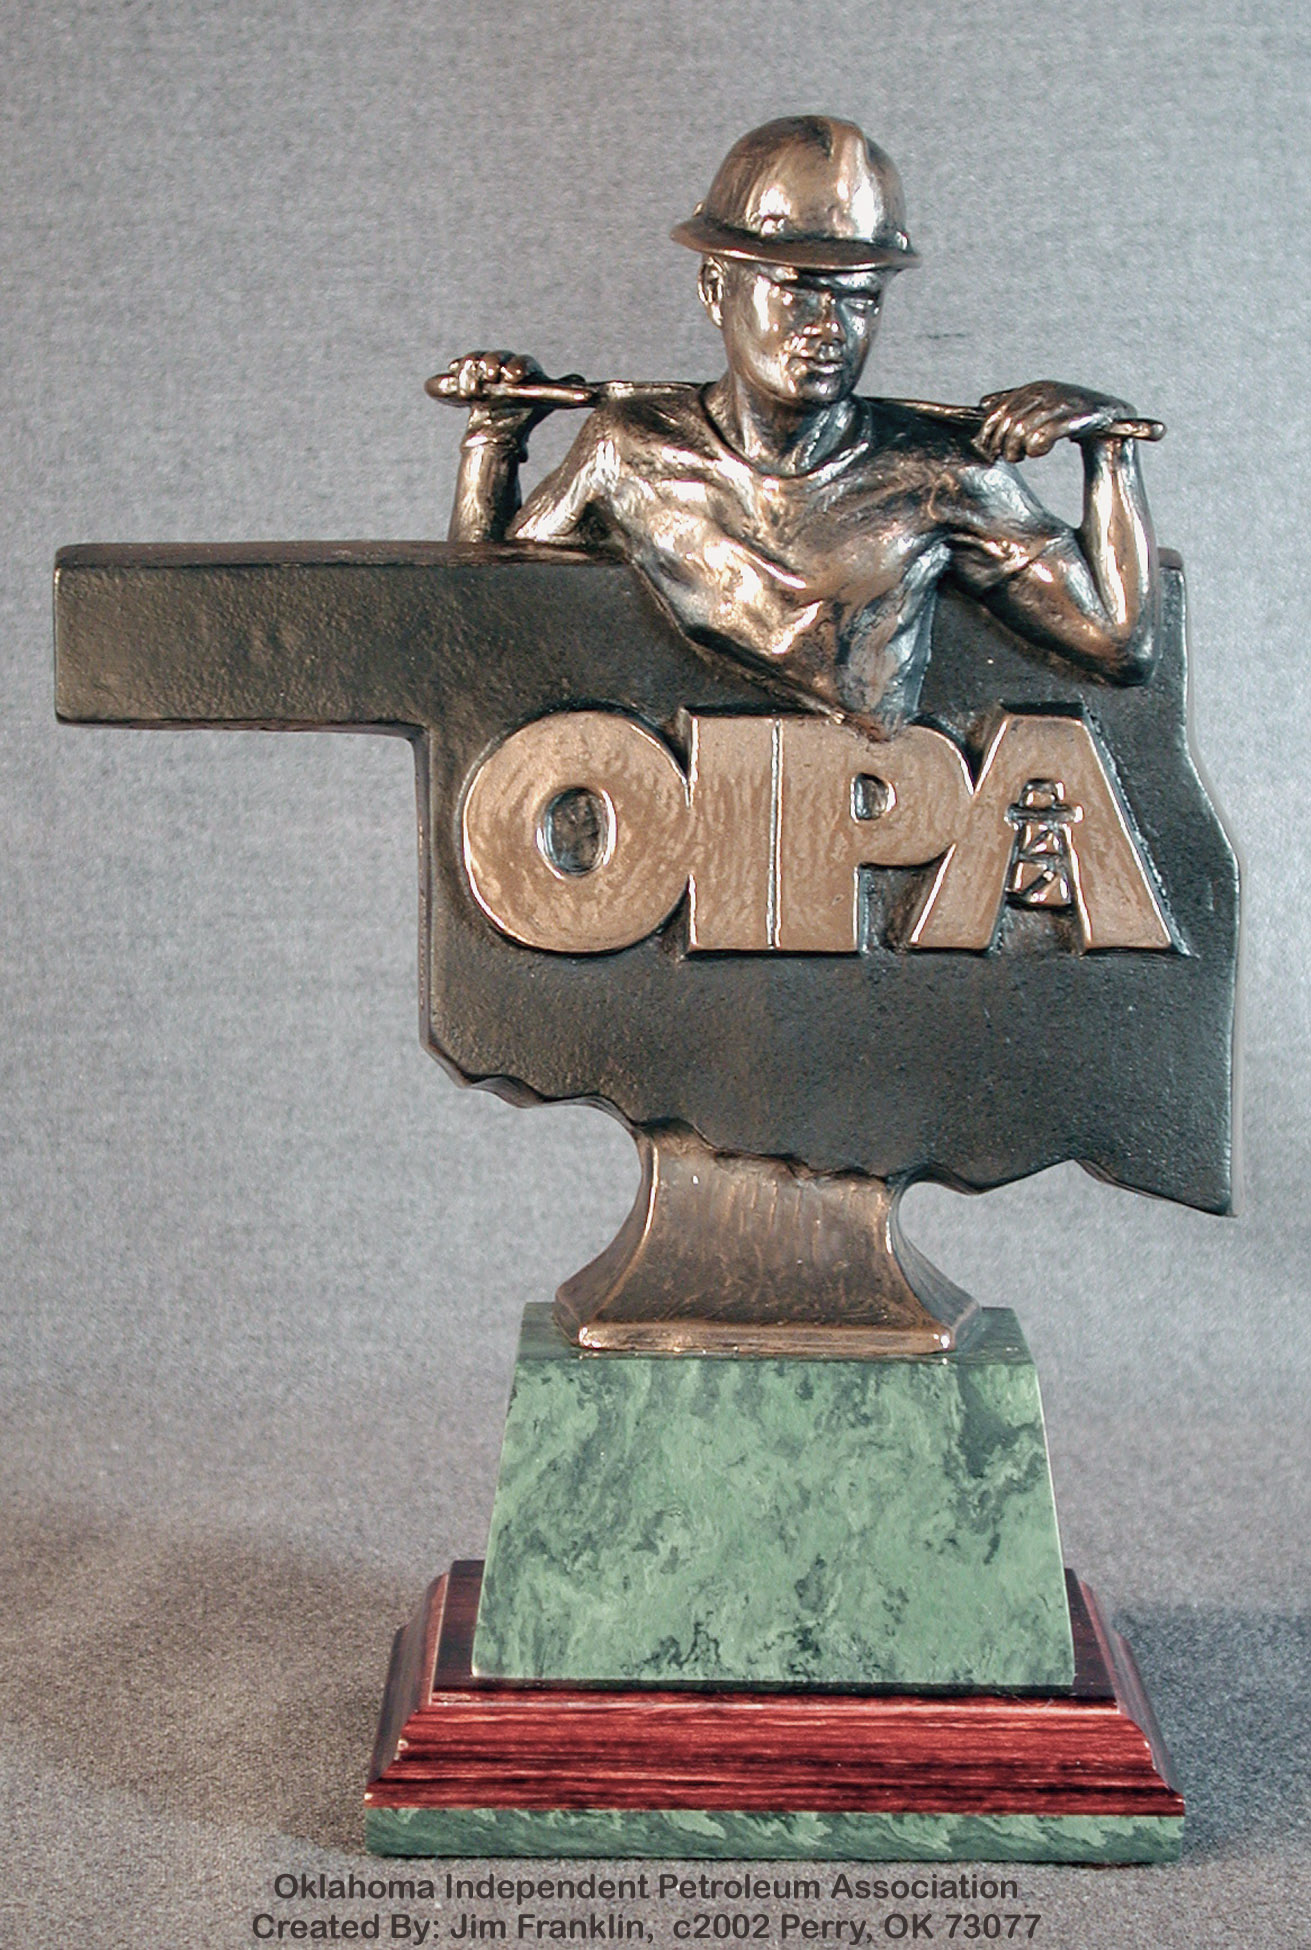 Oklahoma Independent Petroleum Assoc. Award